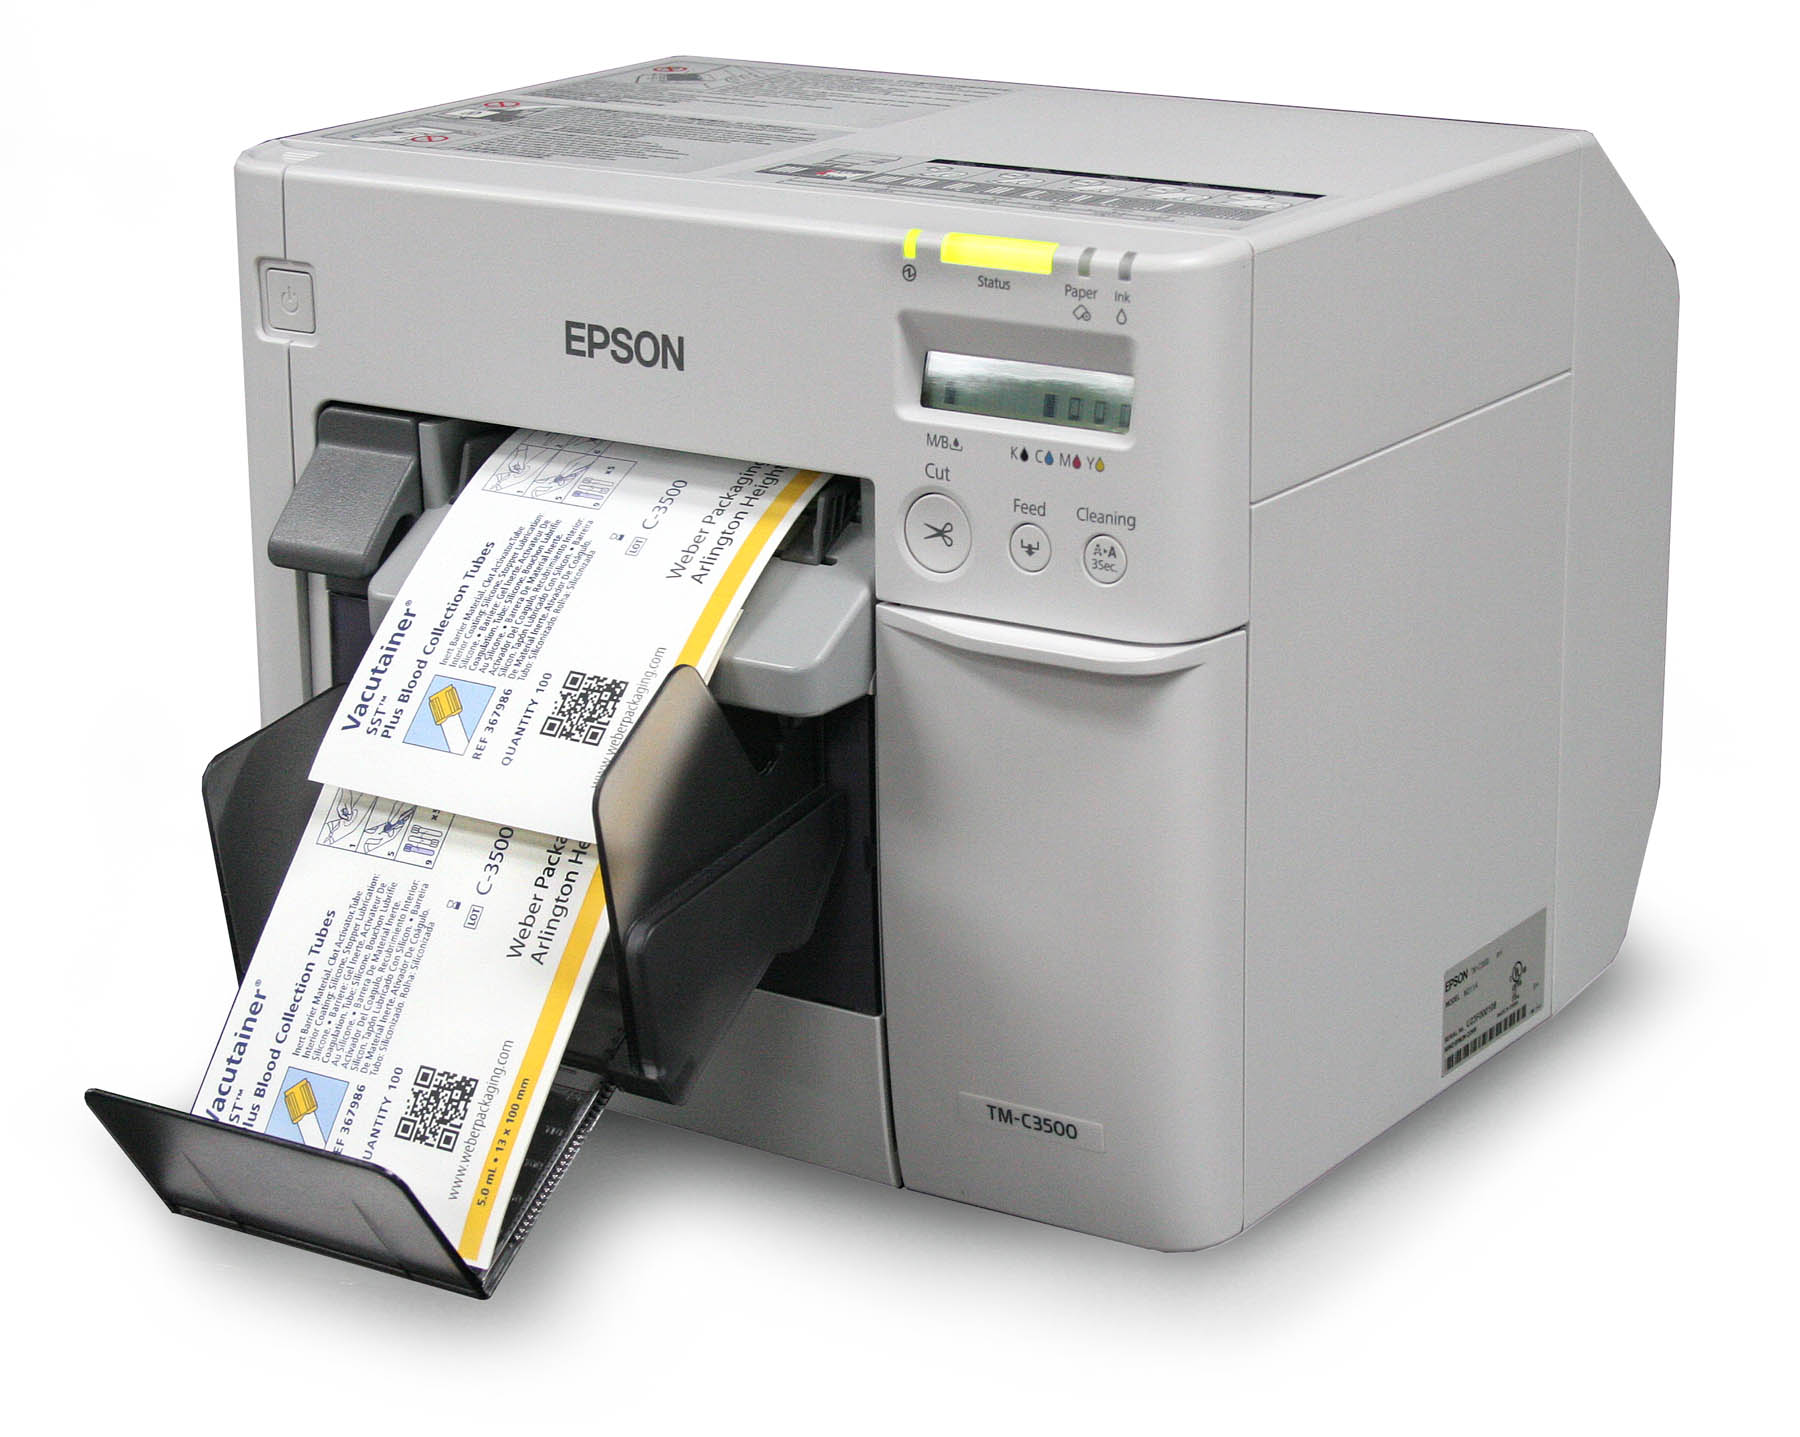 Epson C3500 ink jet label printer